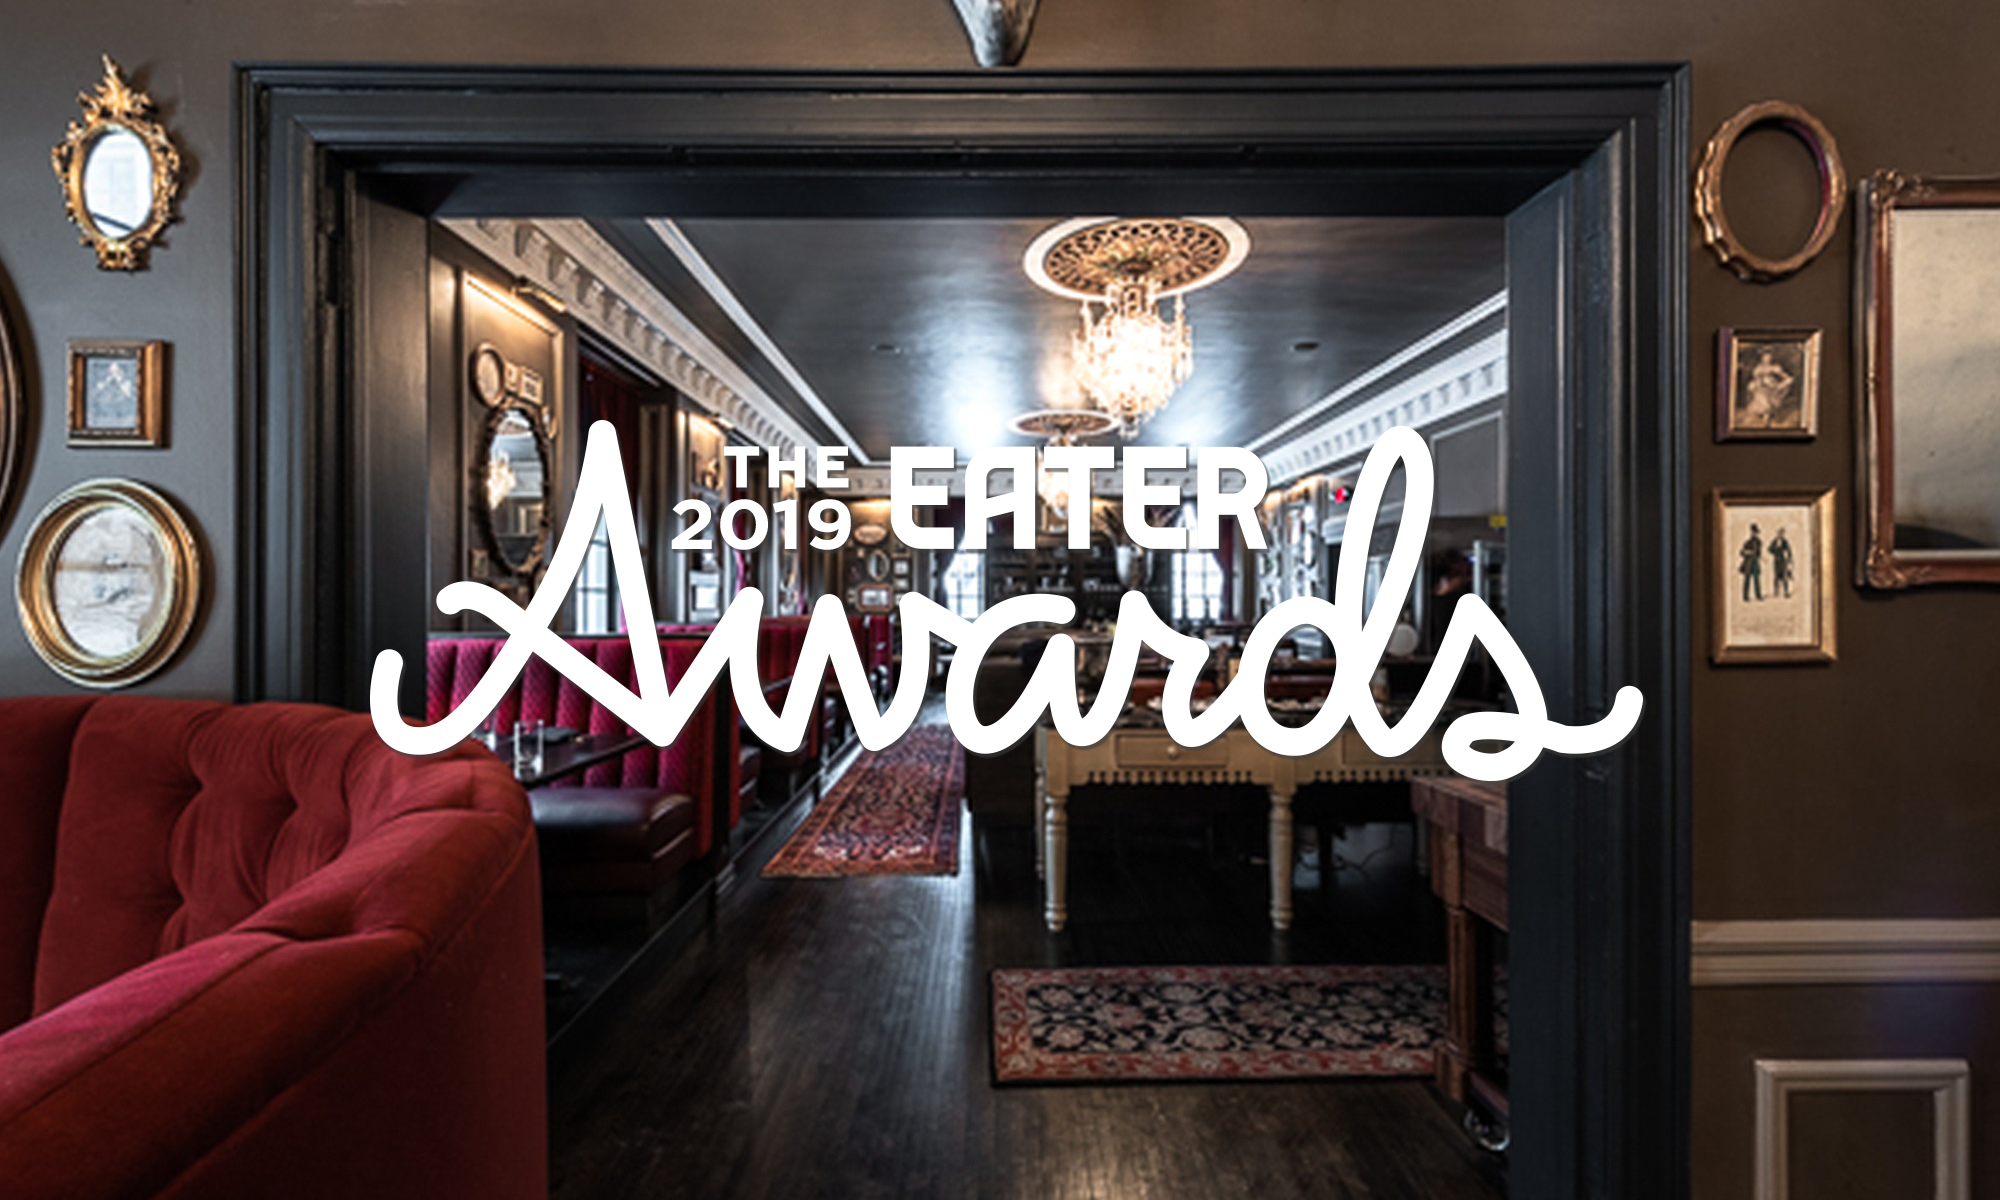 The back dining room of PS Steak with a banner saying The 2019 Eater Awards